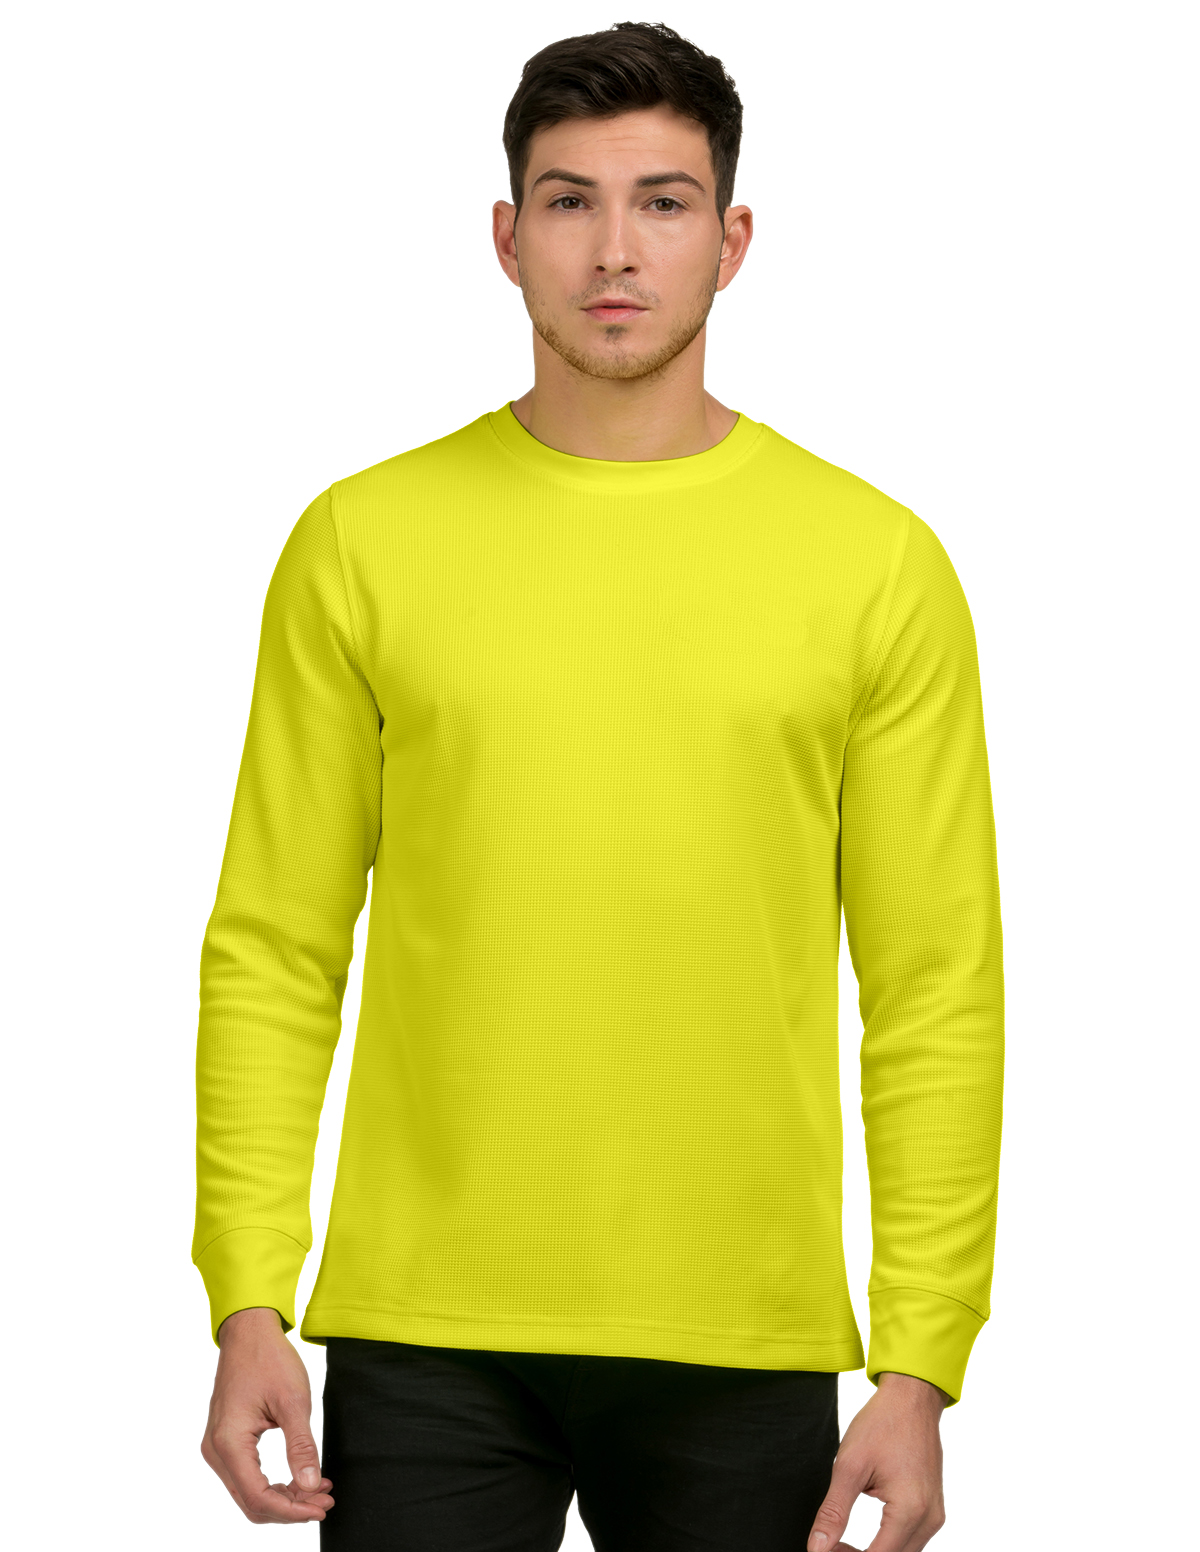 Tri-Mountain K500 - Essent Safety Long Sleeve Safety Thermal